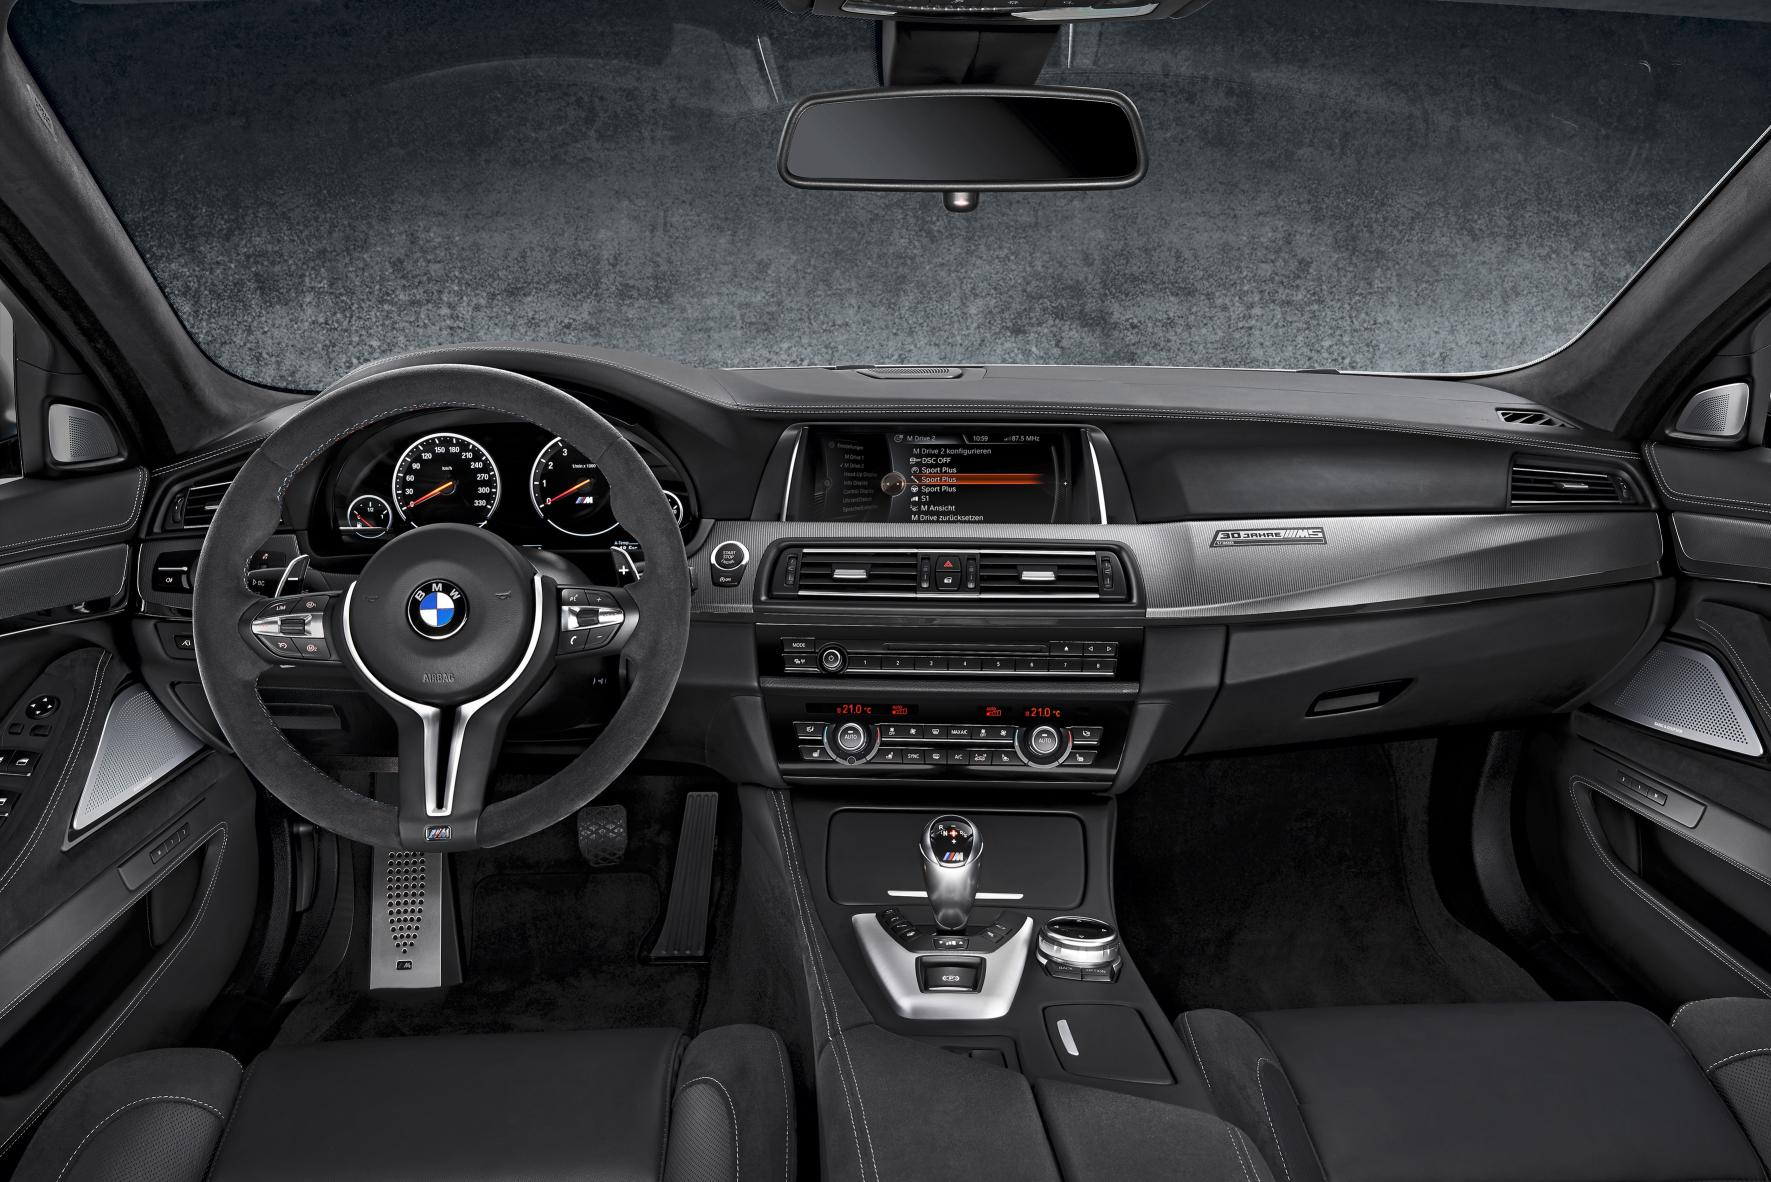 Interior of the BMW M5 30 Jahre Edition